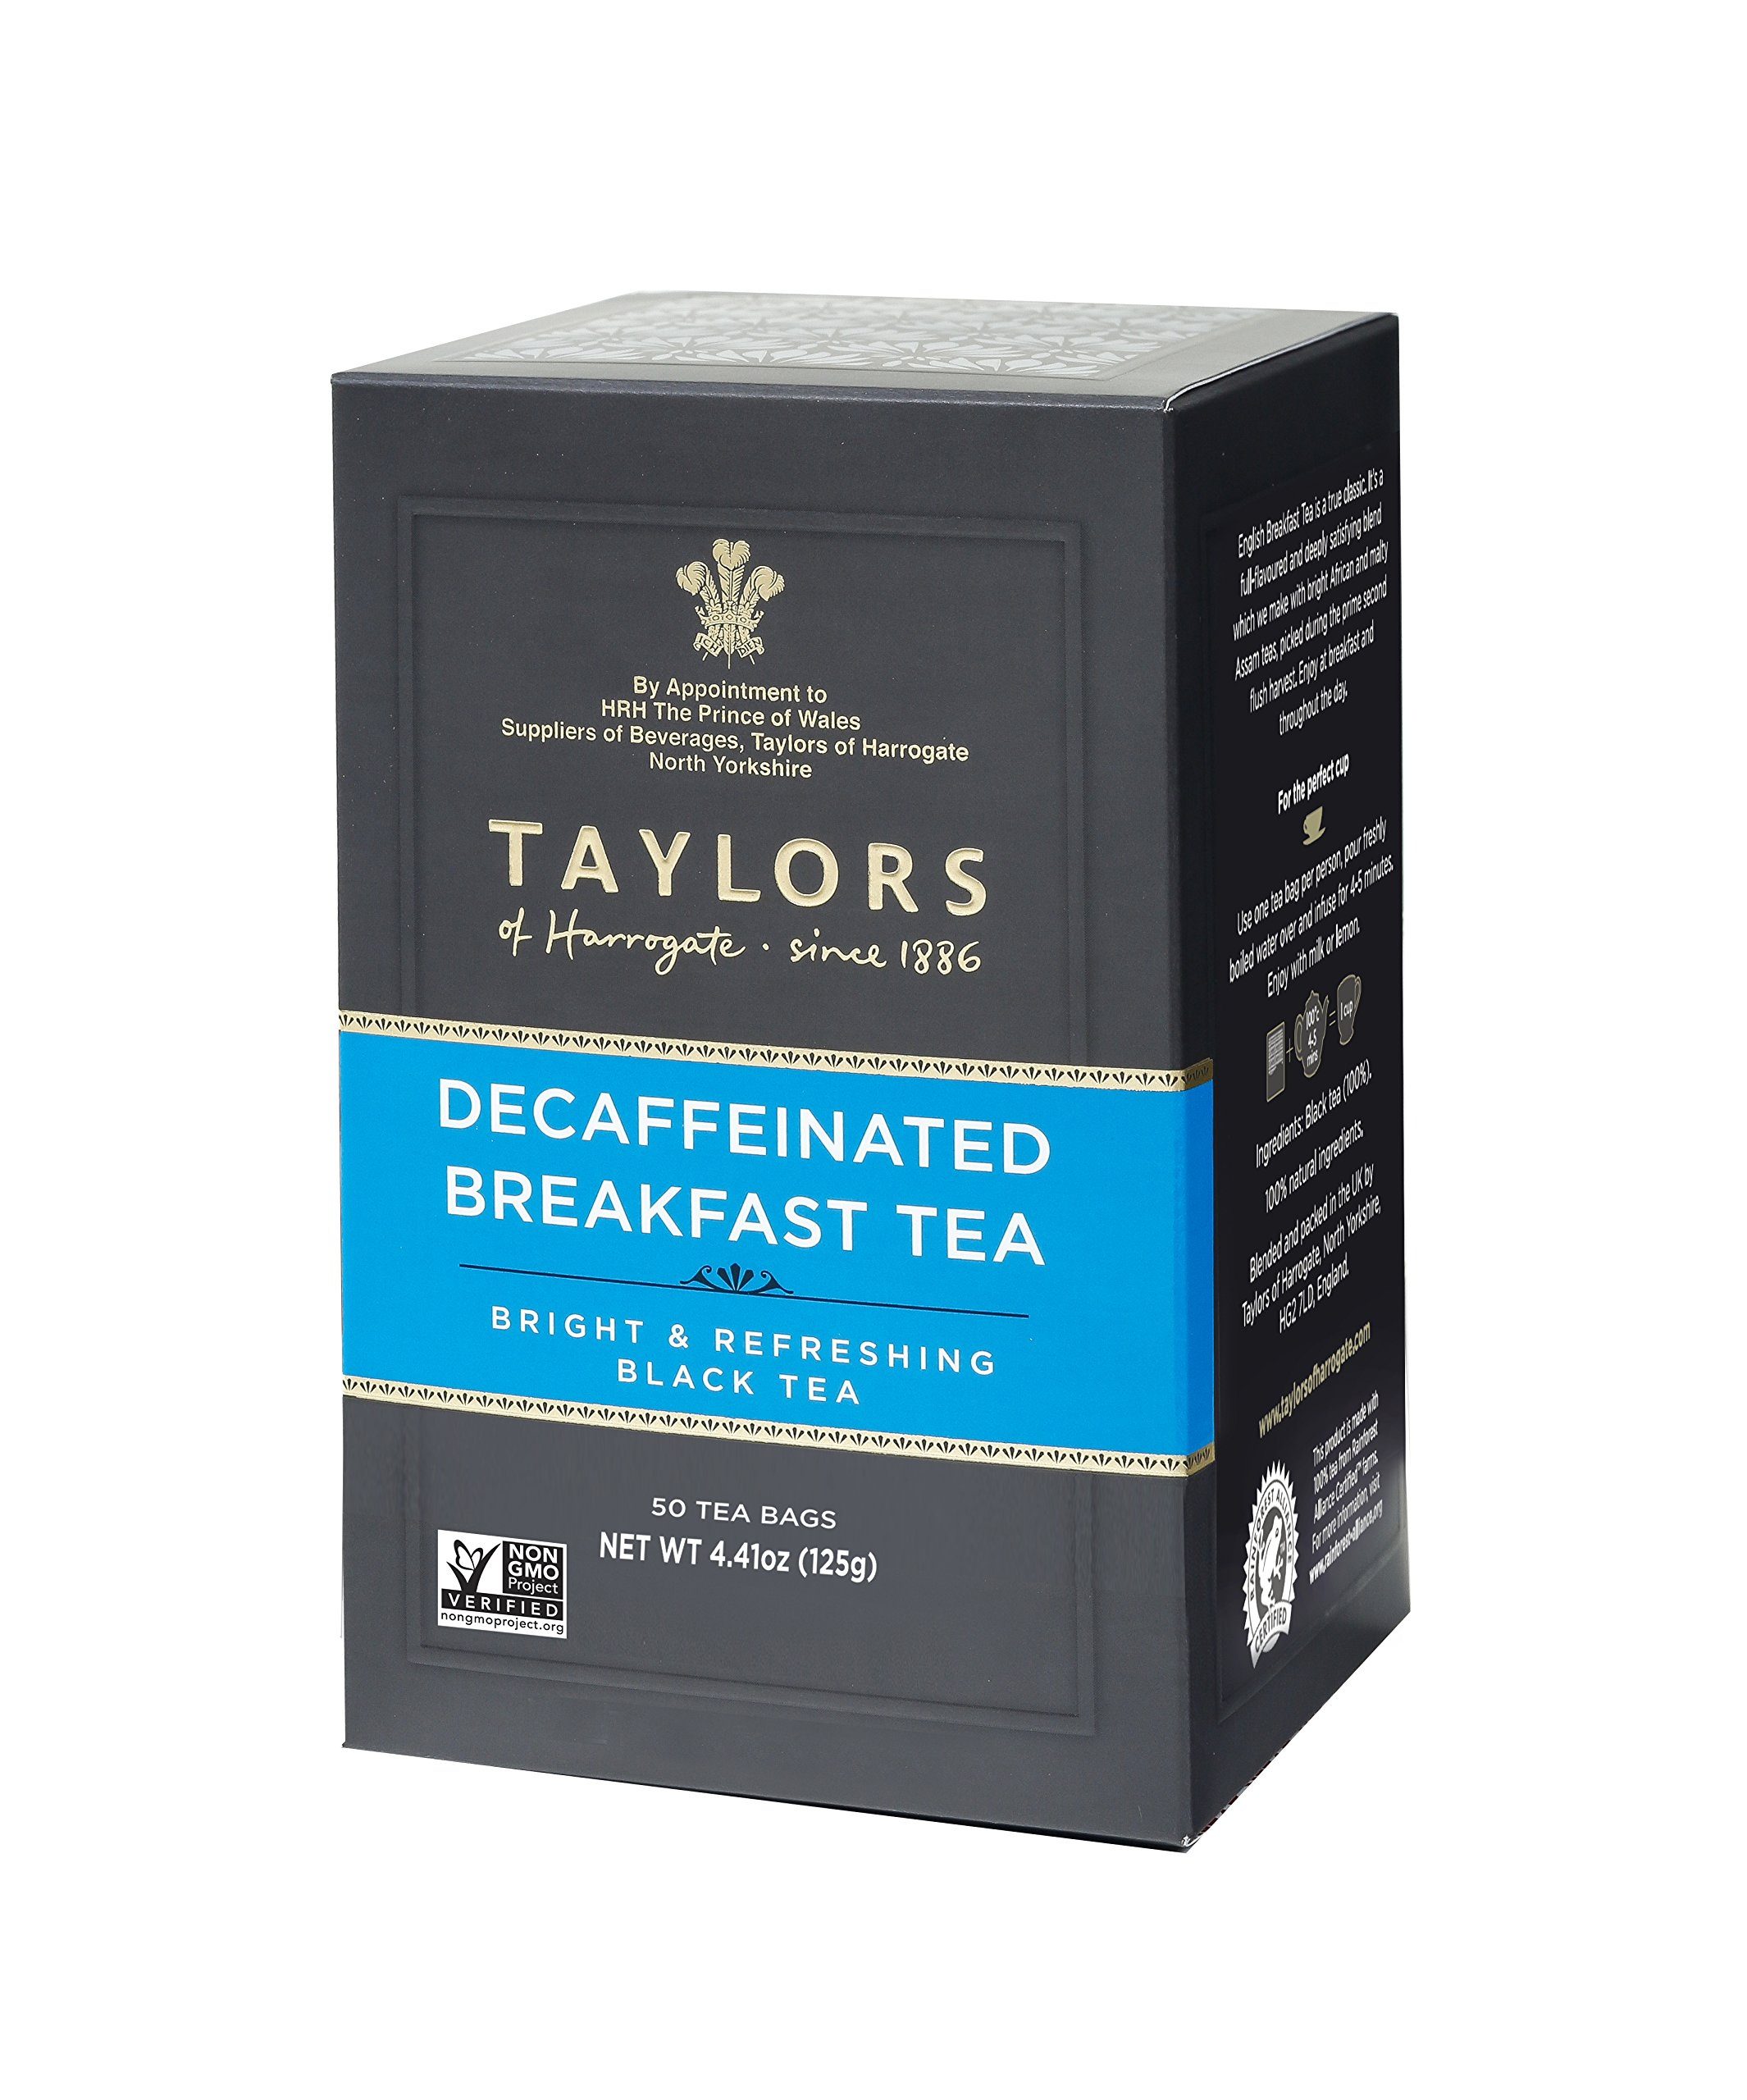 Taylors of Harrogate Decaffeinated Breakfast, 50 Teabags (Pack of 6)